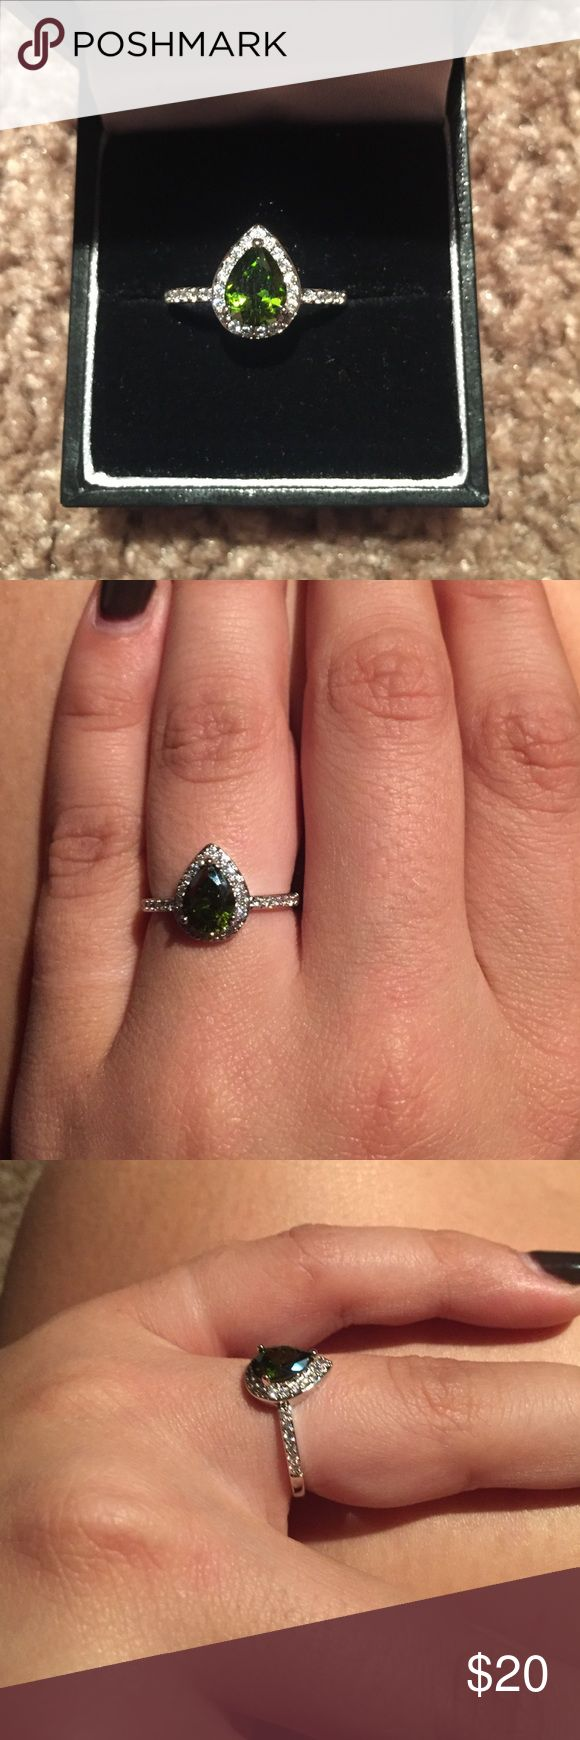 Green Teardrop Diamond Ring This is a green teardrop Diamond ring with a halo around the main stone and gems down the sides of the ring. It is a size 7. The band is made out of rhodium. It has never been worn and is still in perfect condition! Jewelry Rings